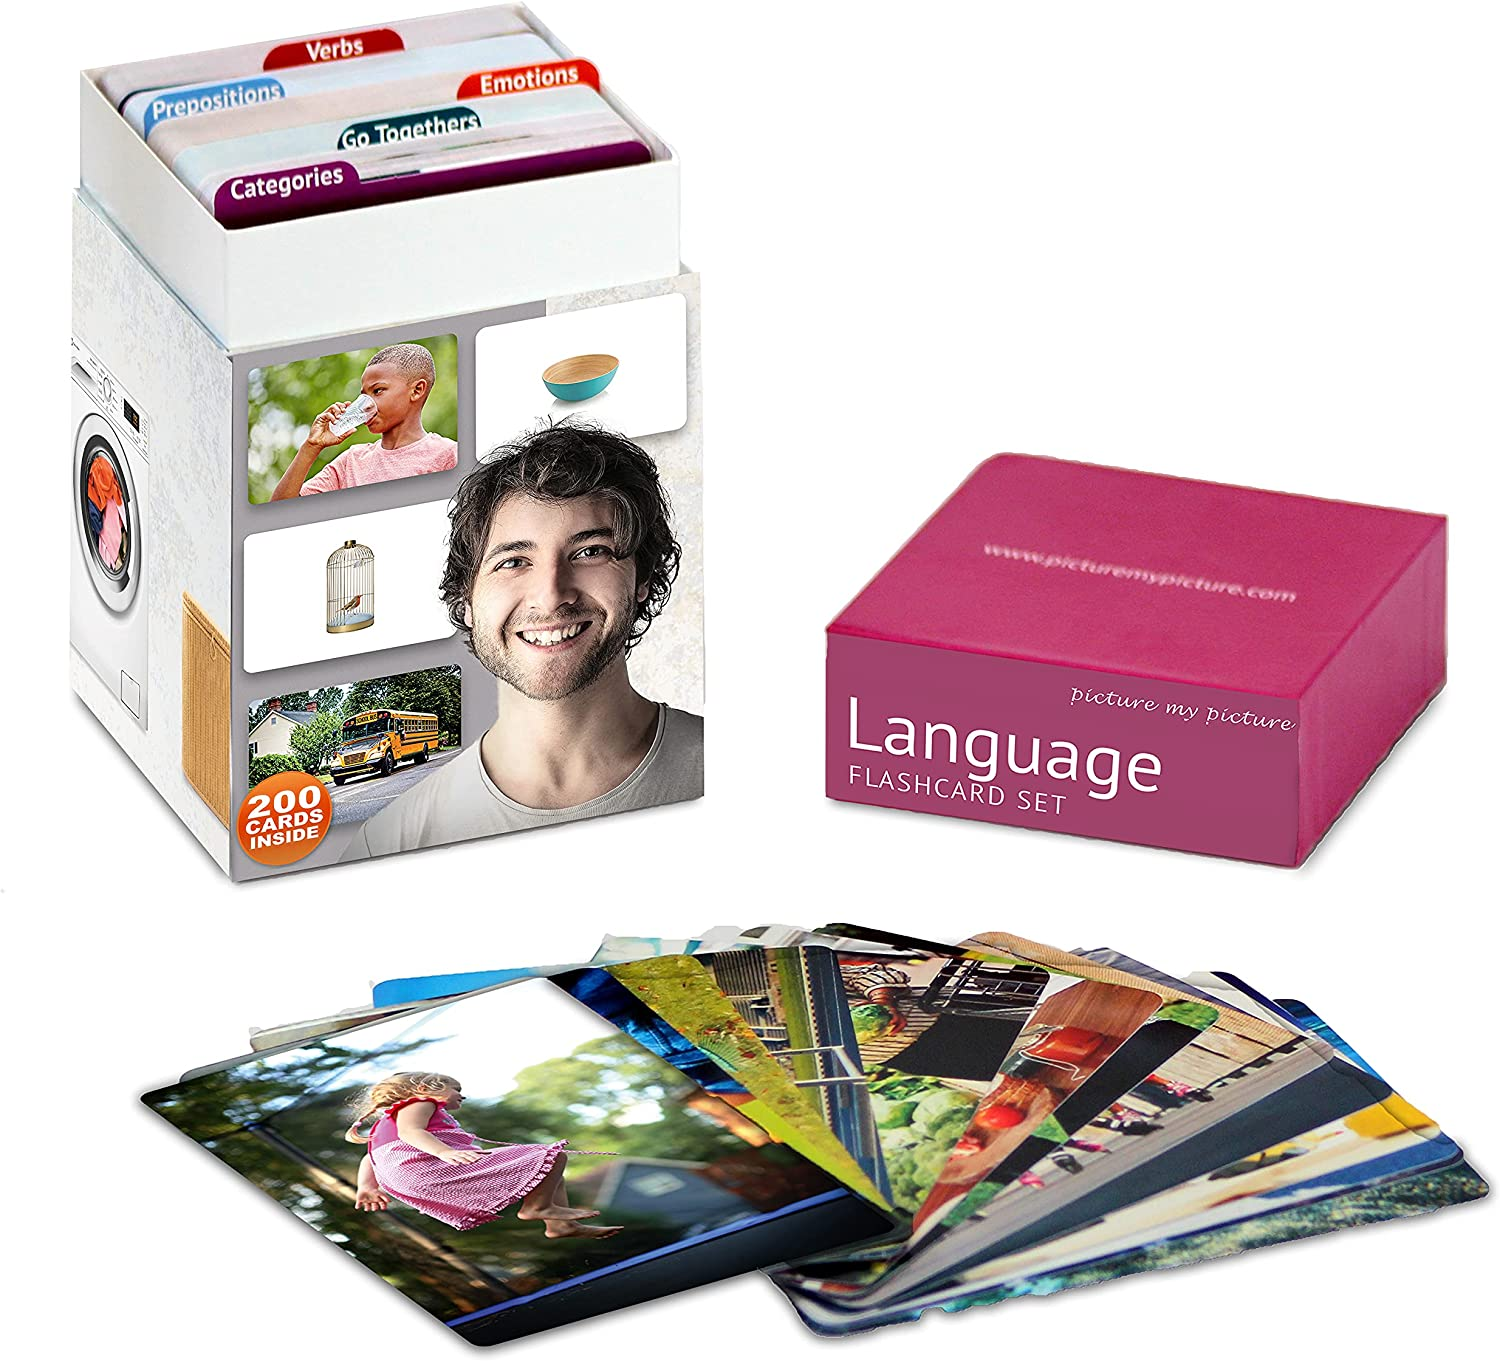 Picture My Language Flash Card Emotio Feelings and Set Quality inspection Challenge the lowest price